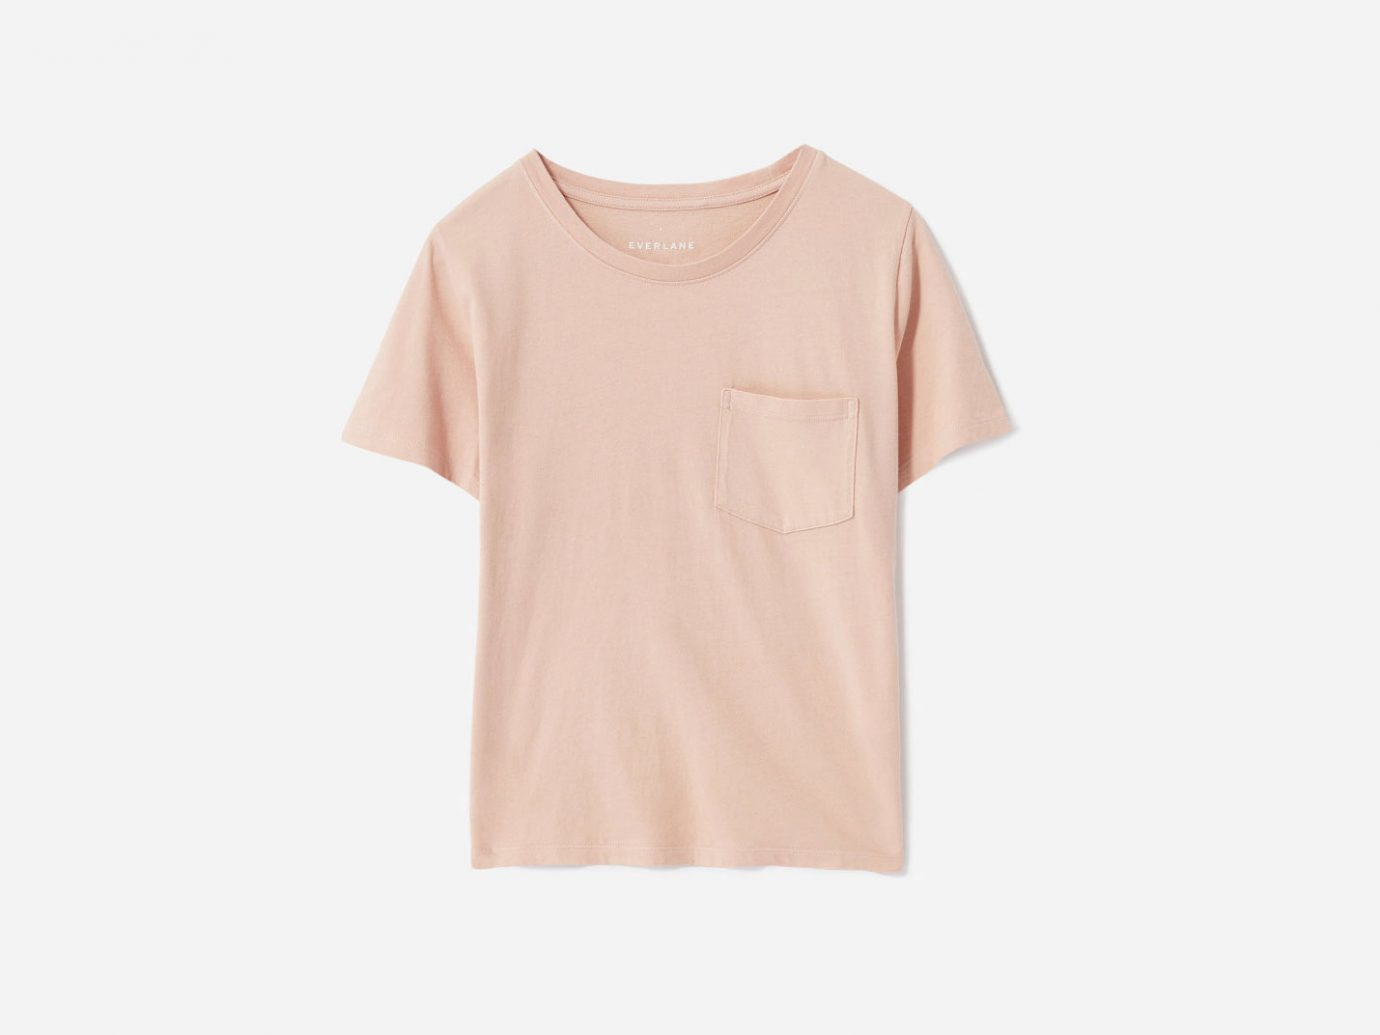 Everlane Cotton Box-Cut Pocket Tee